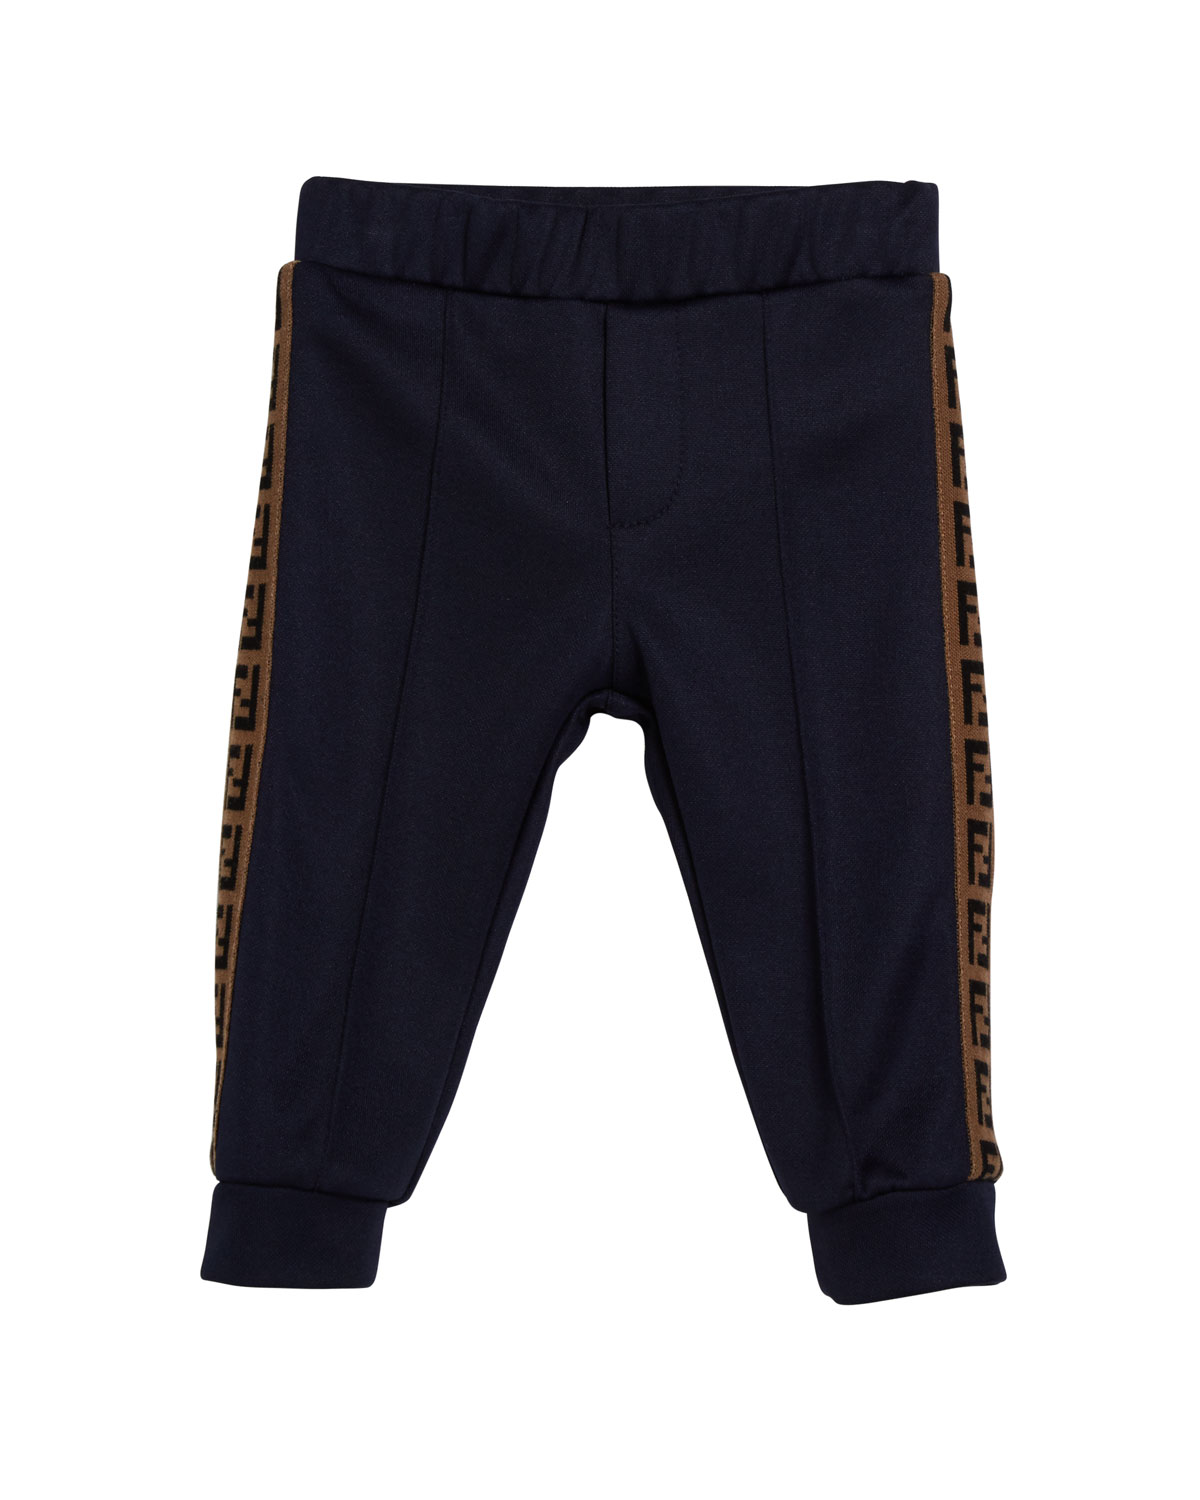 Fendi BOY'S TRACK PANTS W/ FF TAPING